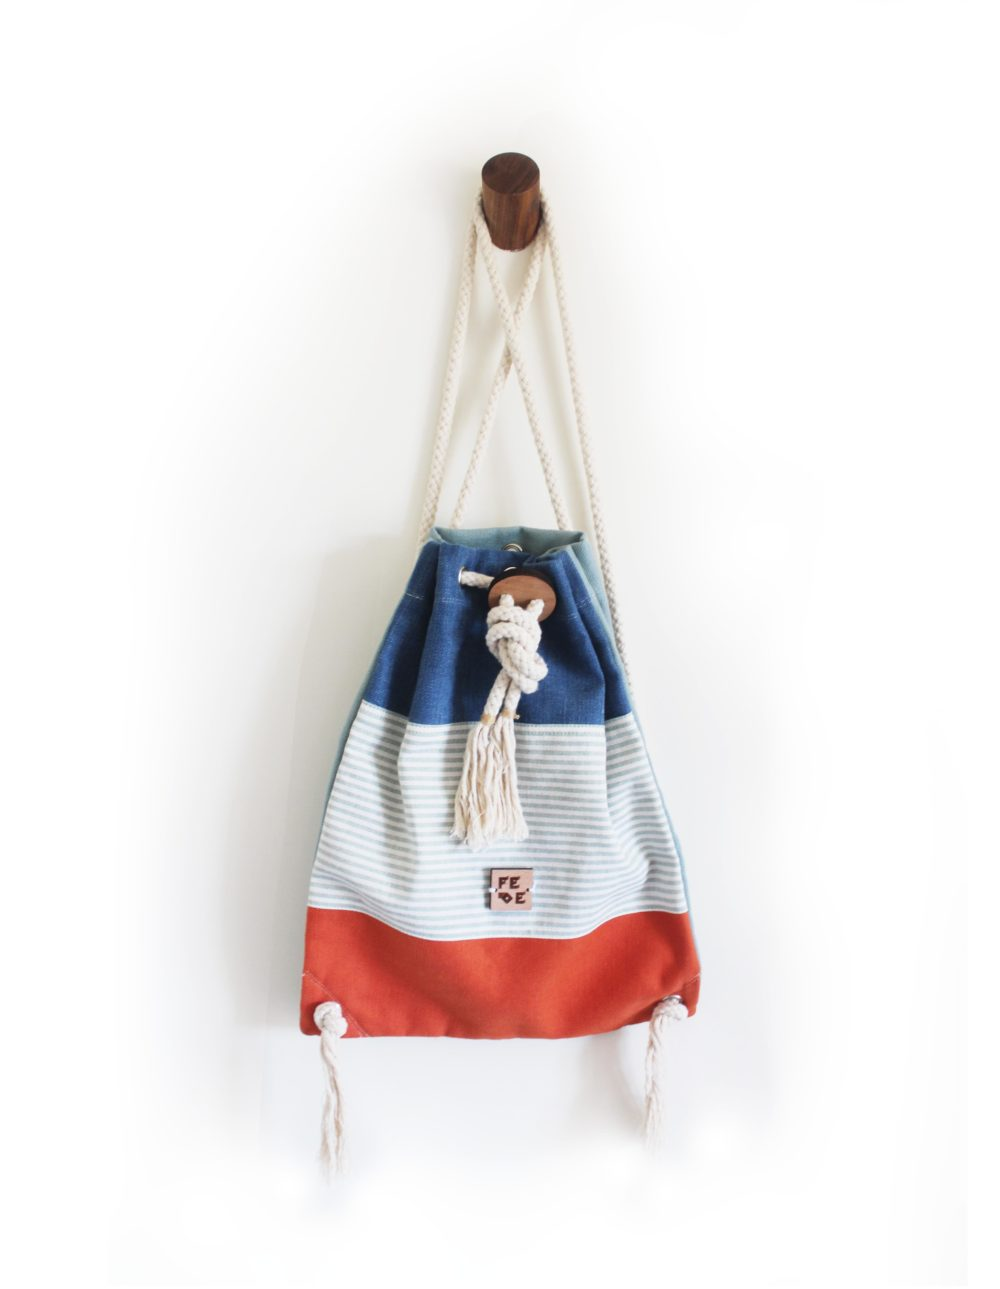 Blu & Orange Cotton Canvas Rucksack with drawn-strings closure. Sailor Corallo Mini Nomad by Fede Surfbags.